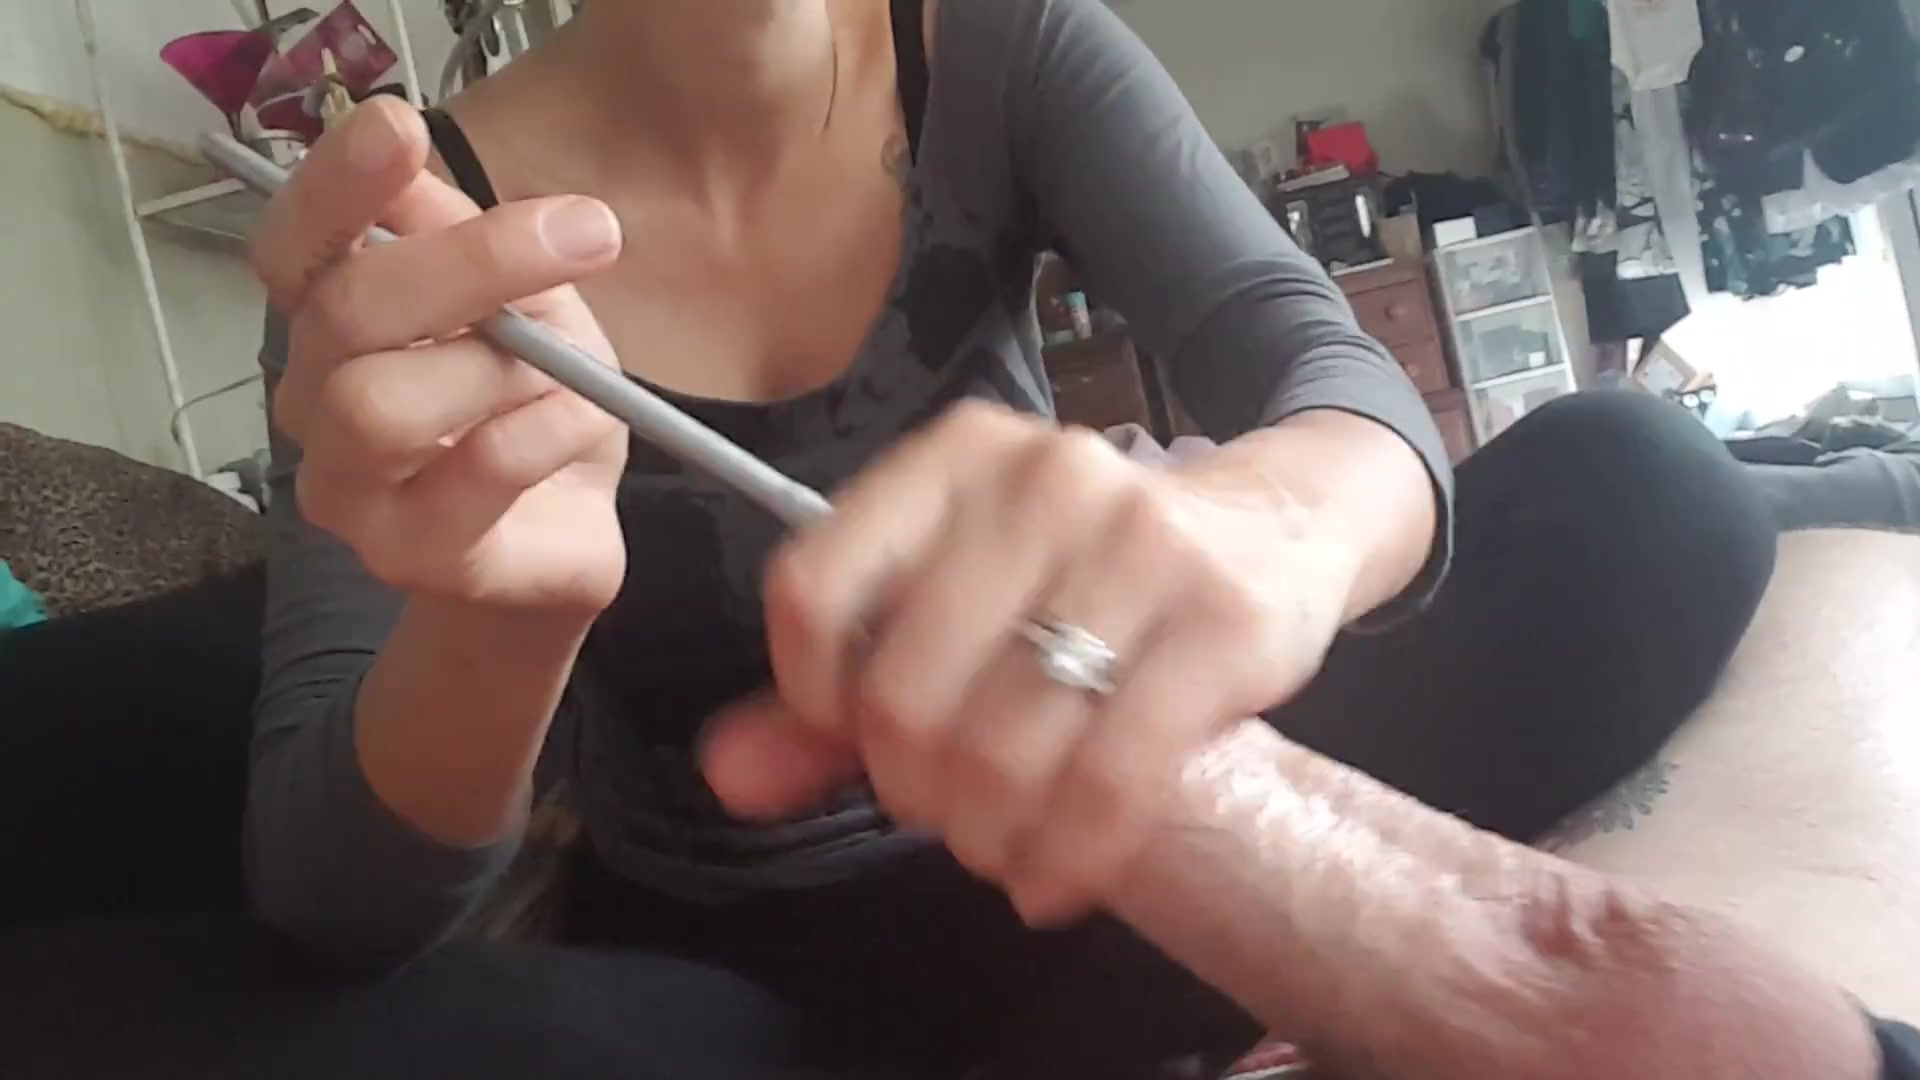 Urethra Insertion - Sounding Pee Hole - Teen Discover -4934